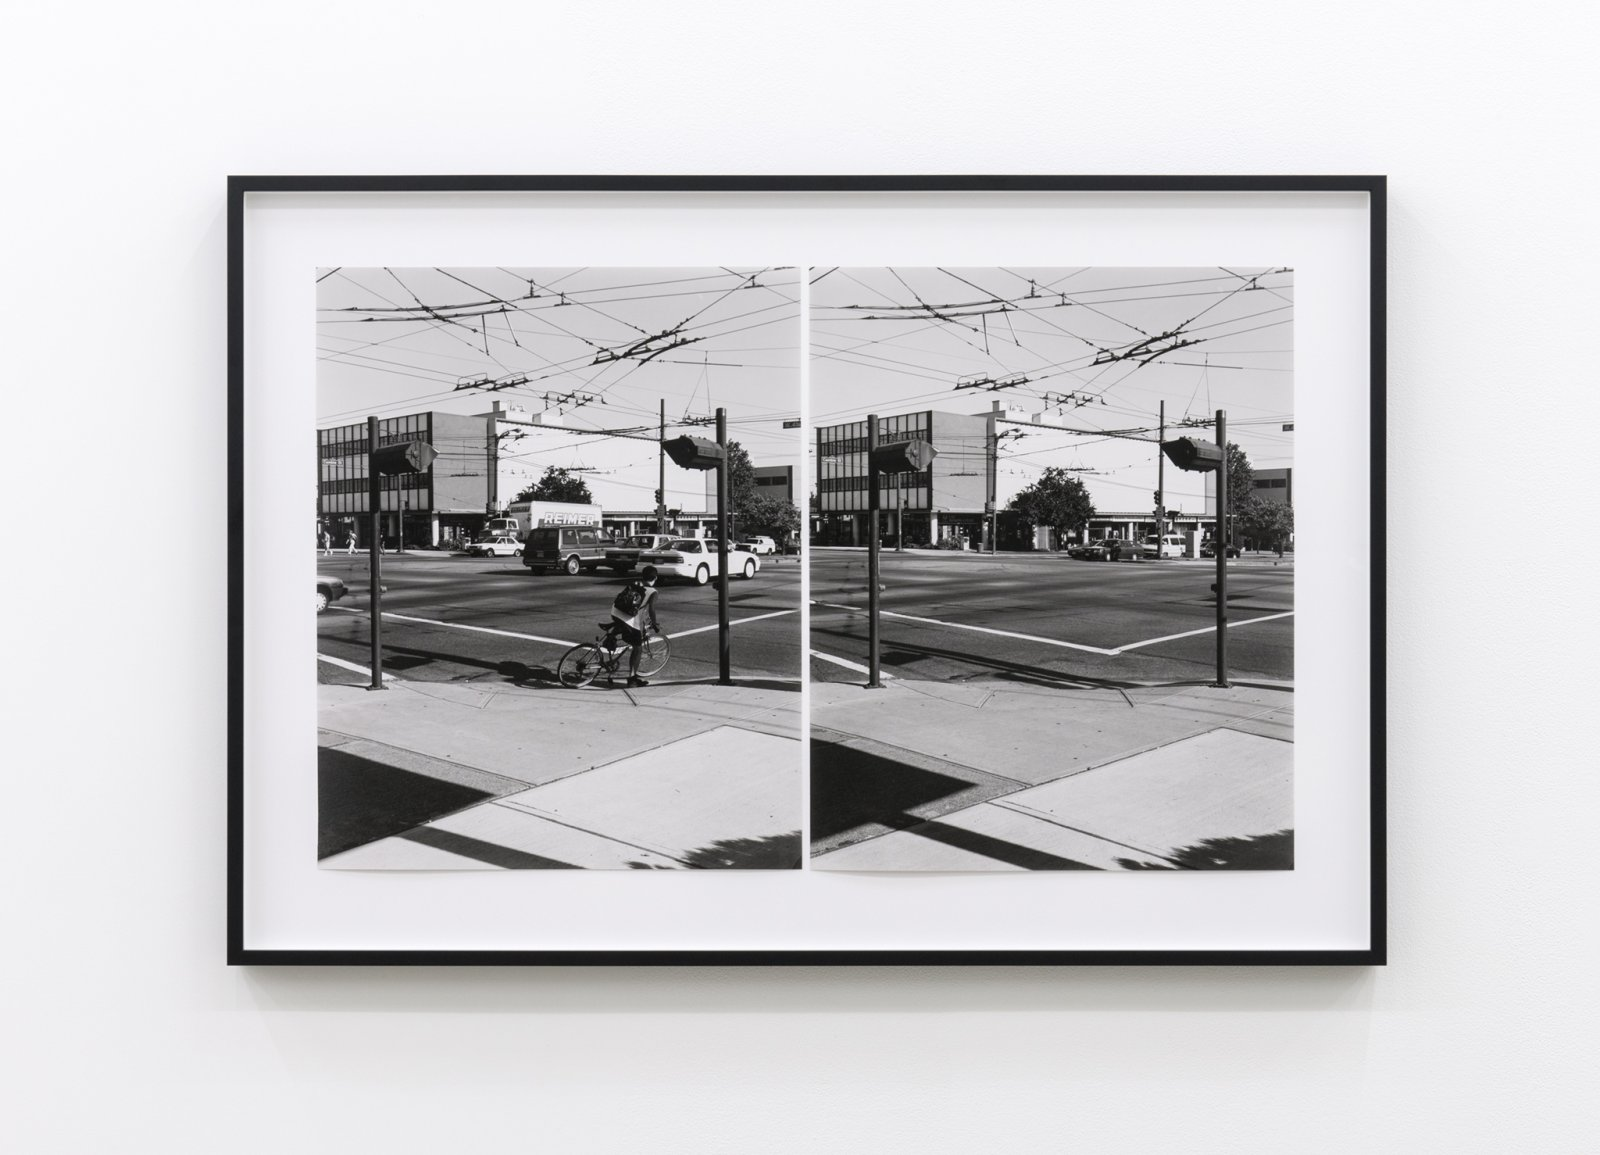 Ian Wallace, Intersection (Cambie and 41st Street), 1996, two black and white photographs, 23 x 19 in. (60 x 48 cm) by Ian Wallace